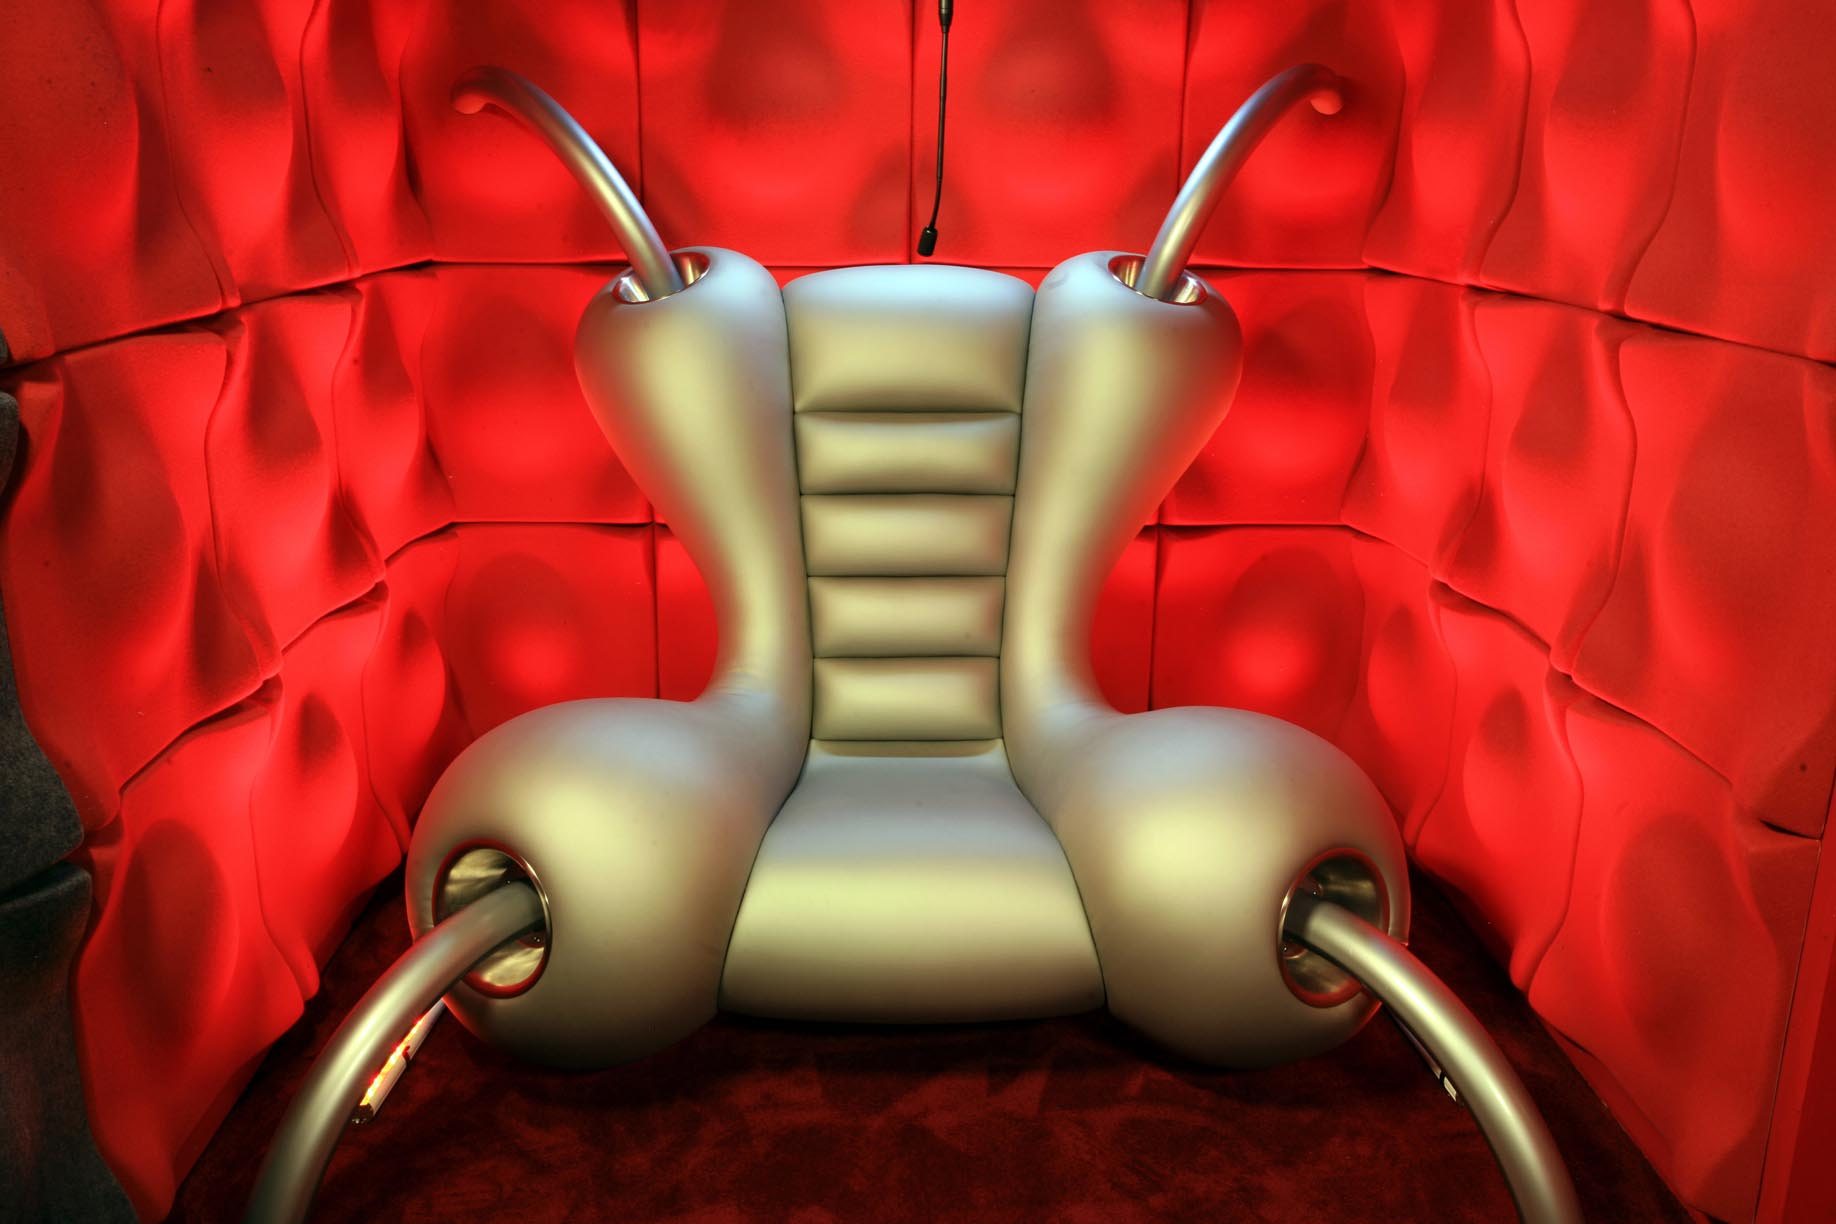 Celebrity big brother diary room chair 2019